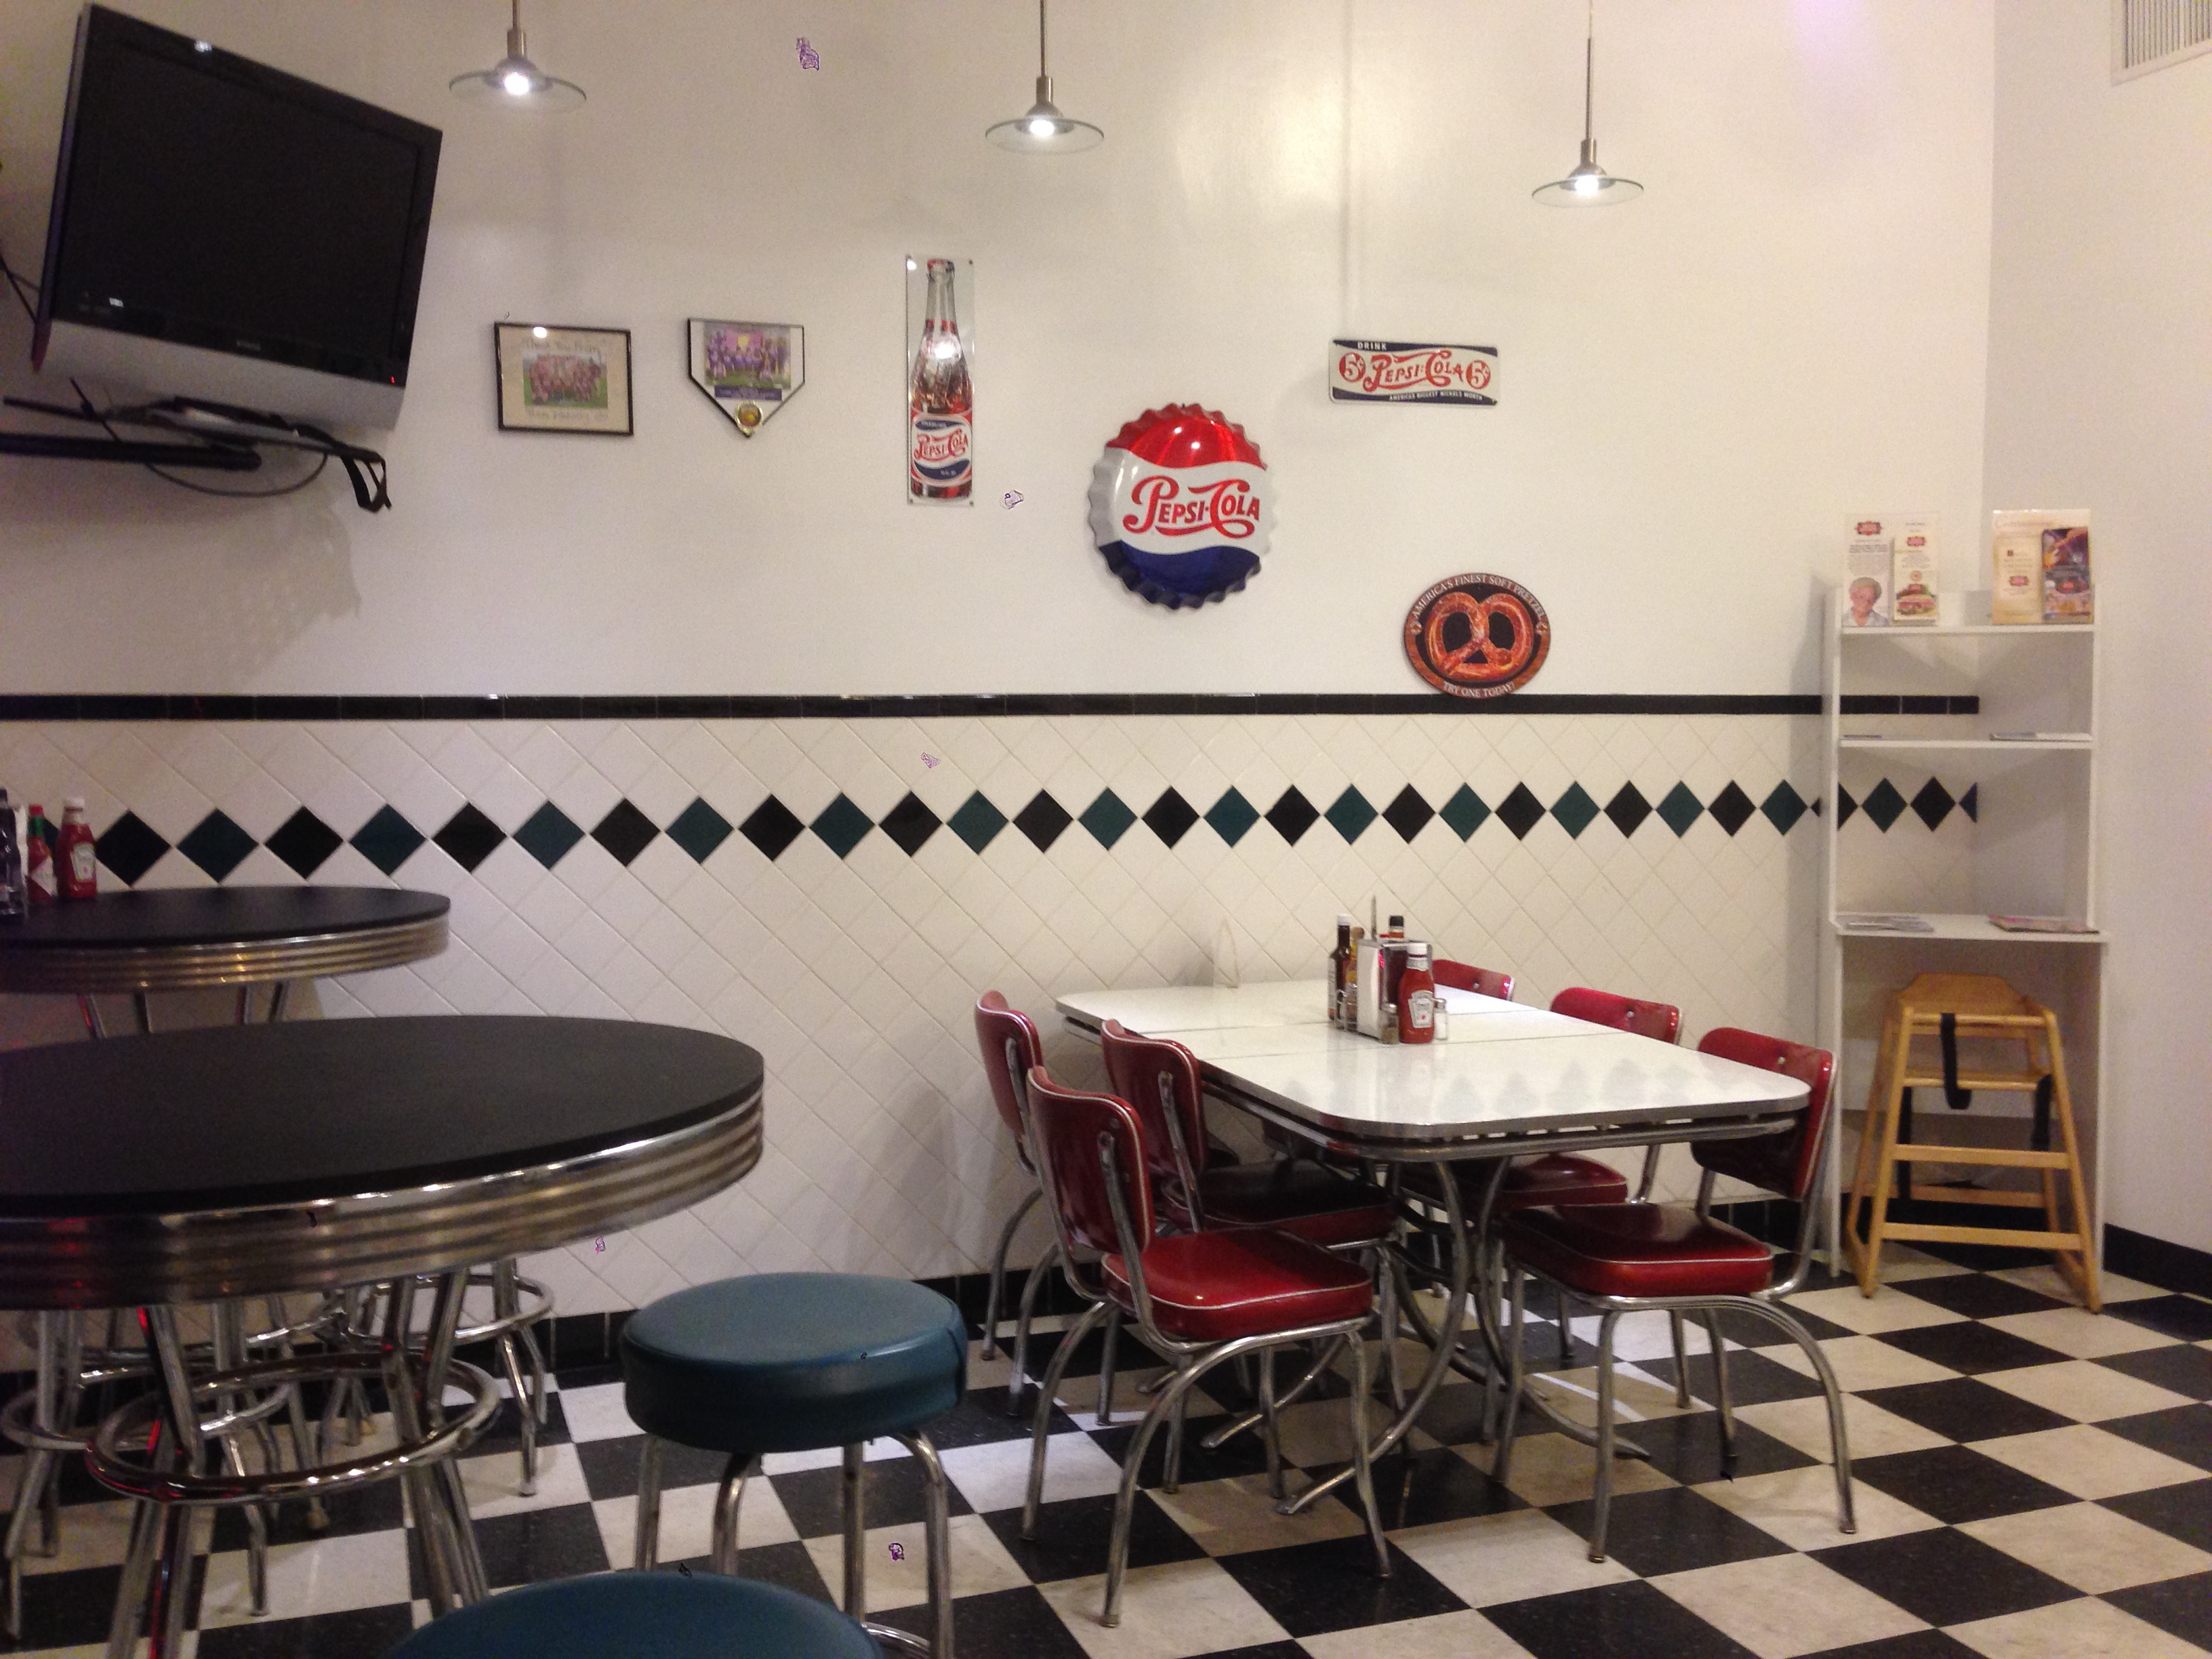 The added seating has some old school diner charm.